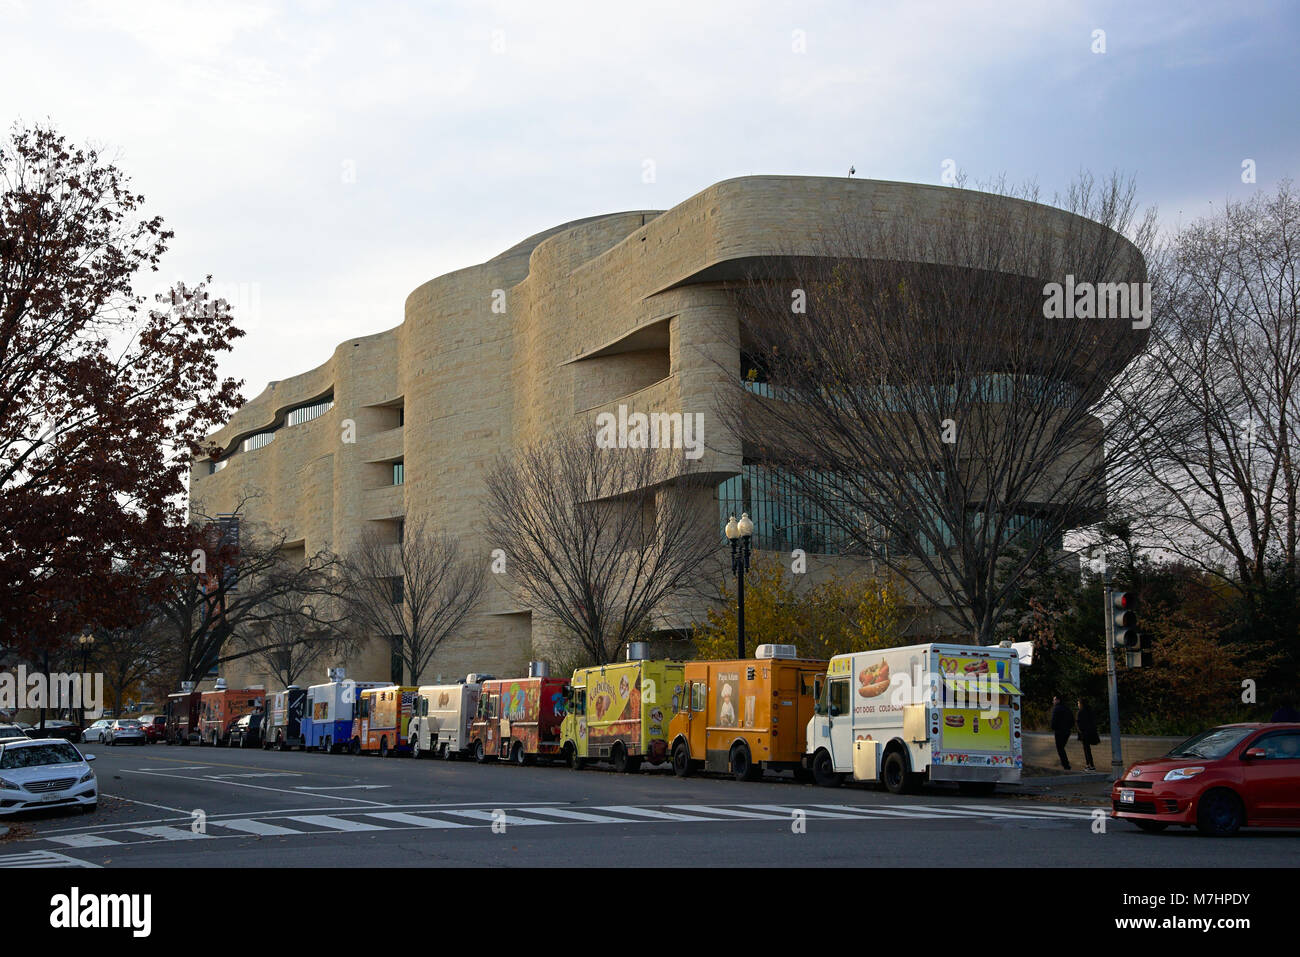 Native American Museum with food truck in front - Stock Image